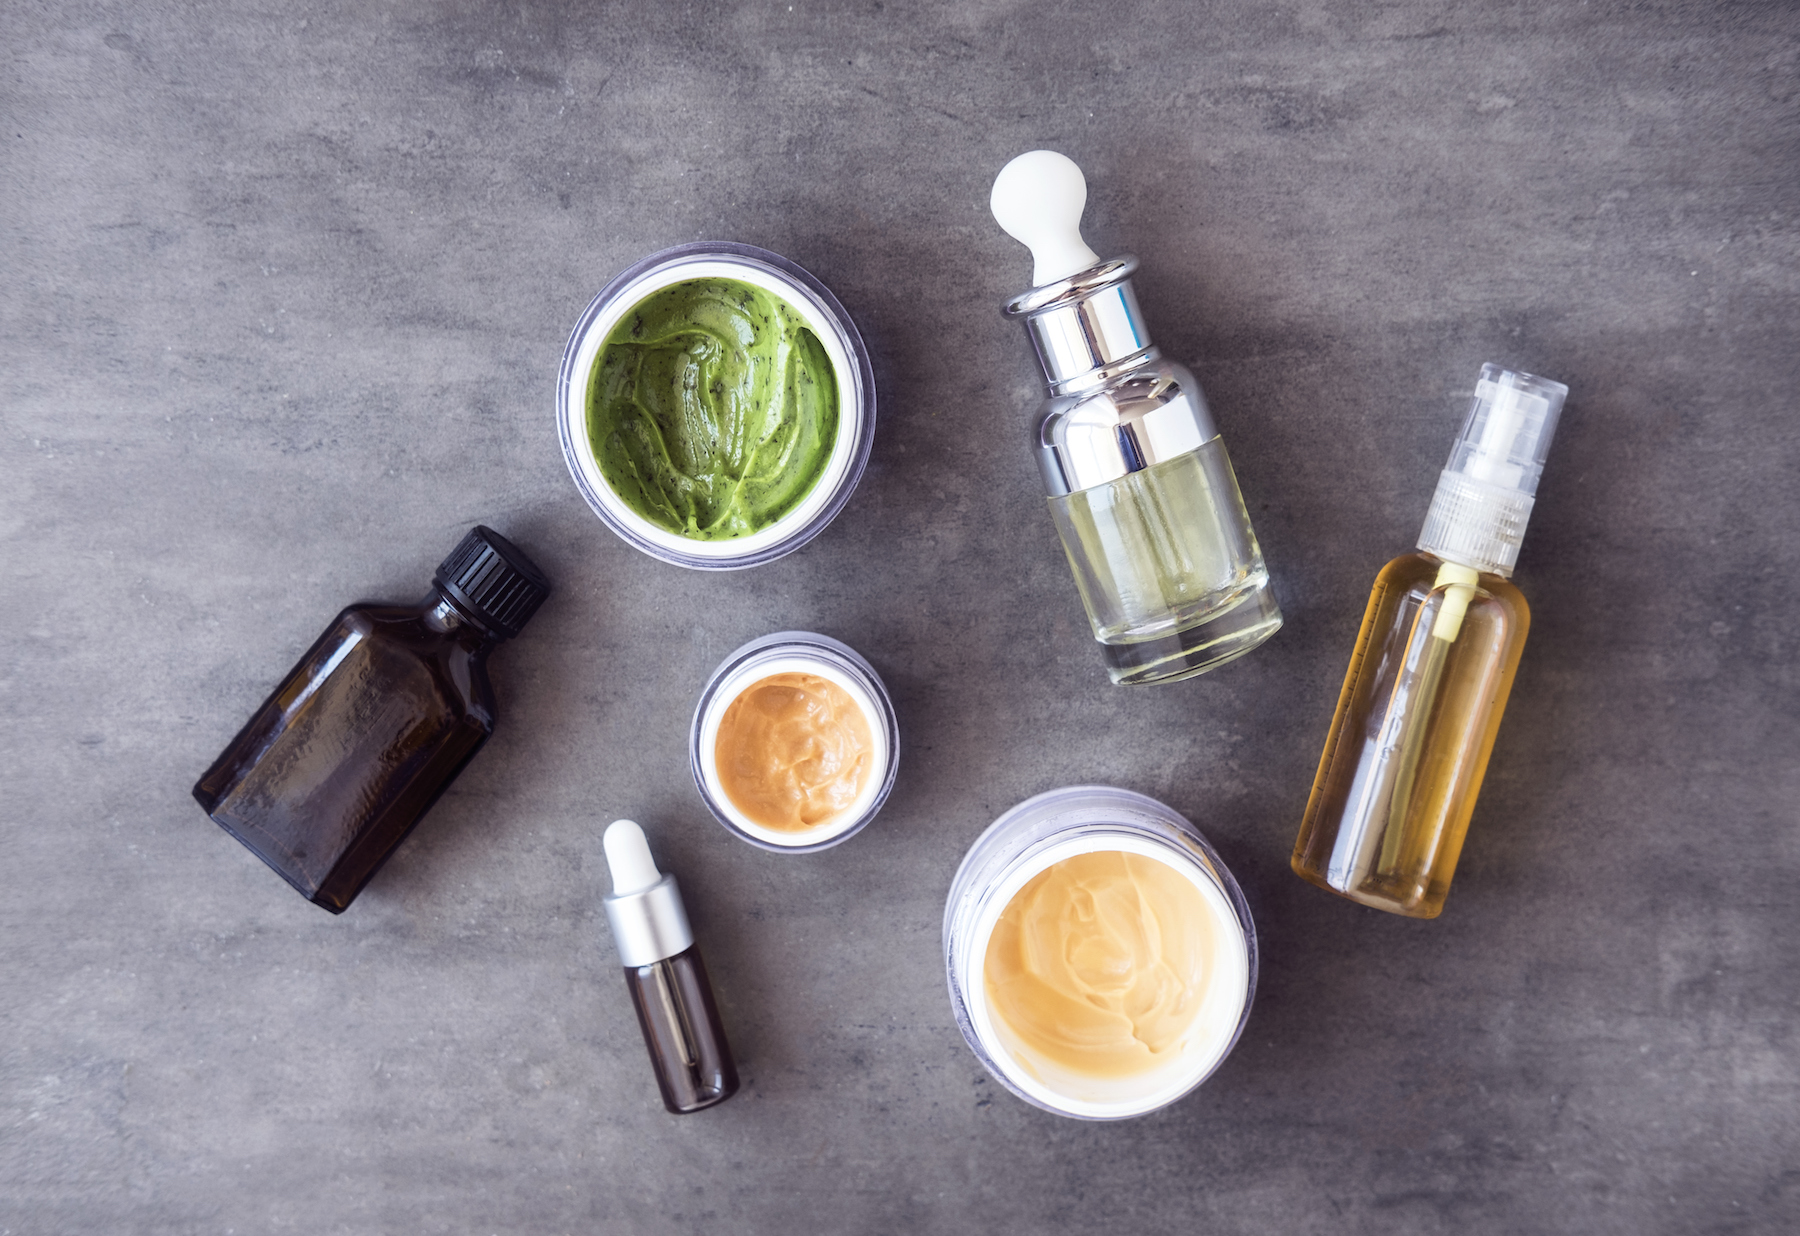 what skin care products do i really need?